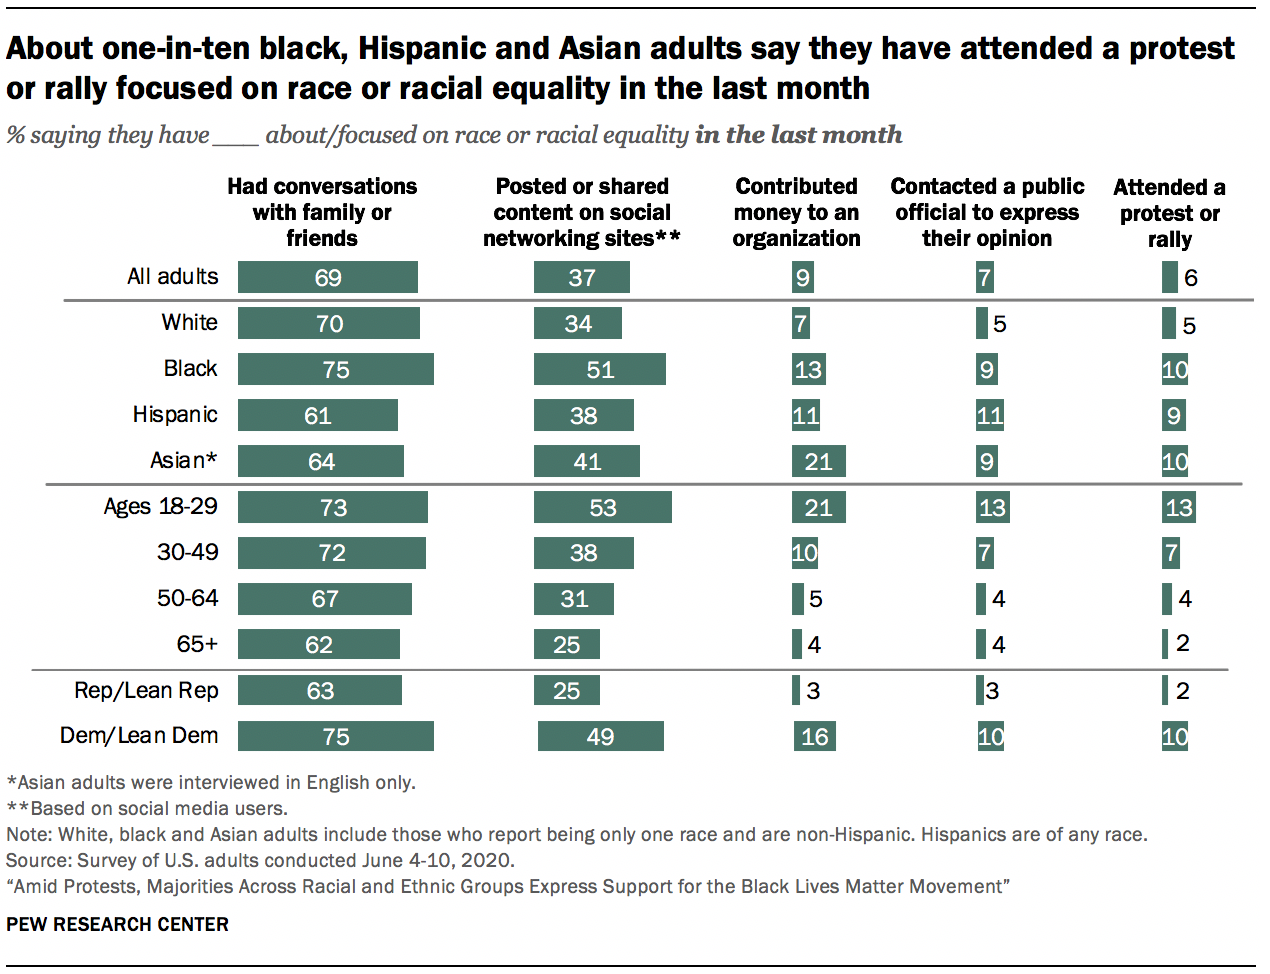 About one-in-ten black, Hispanic and Asian adults say they have attended a protest or rally focused on race or racial equality in the last month